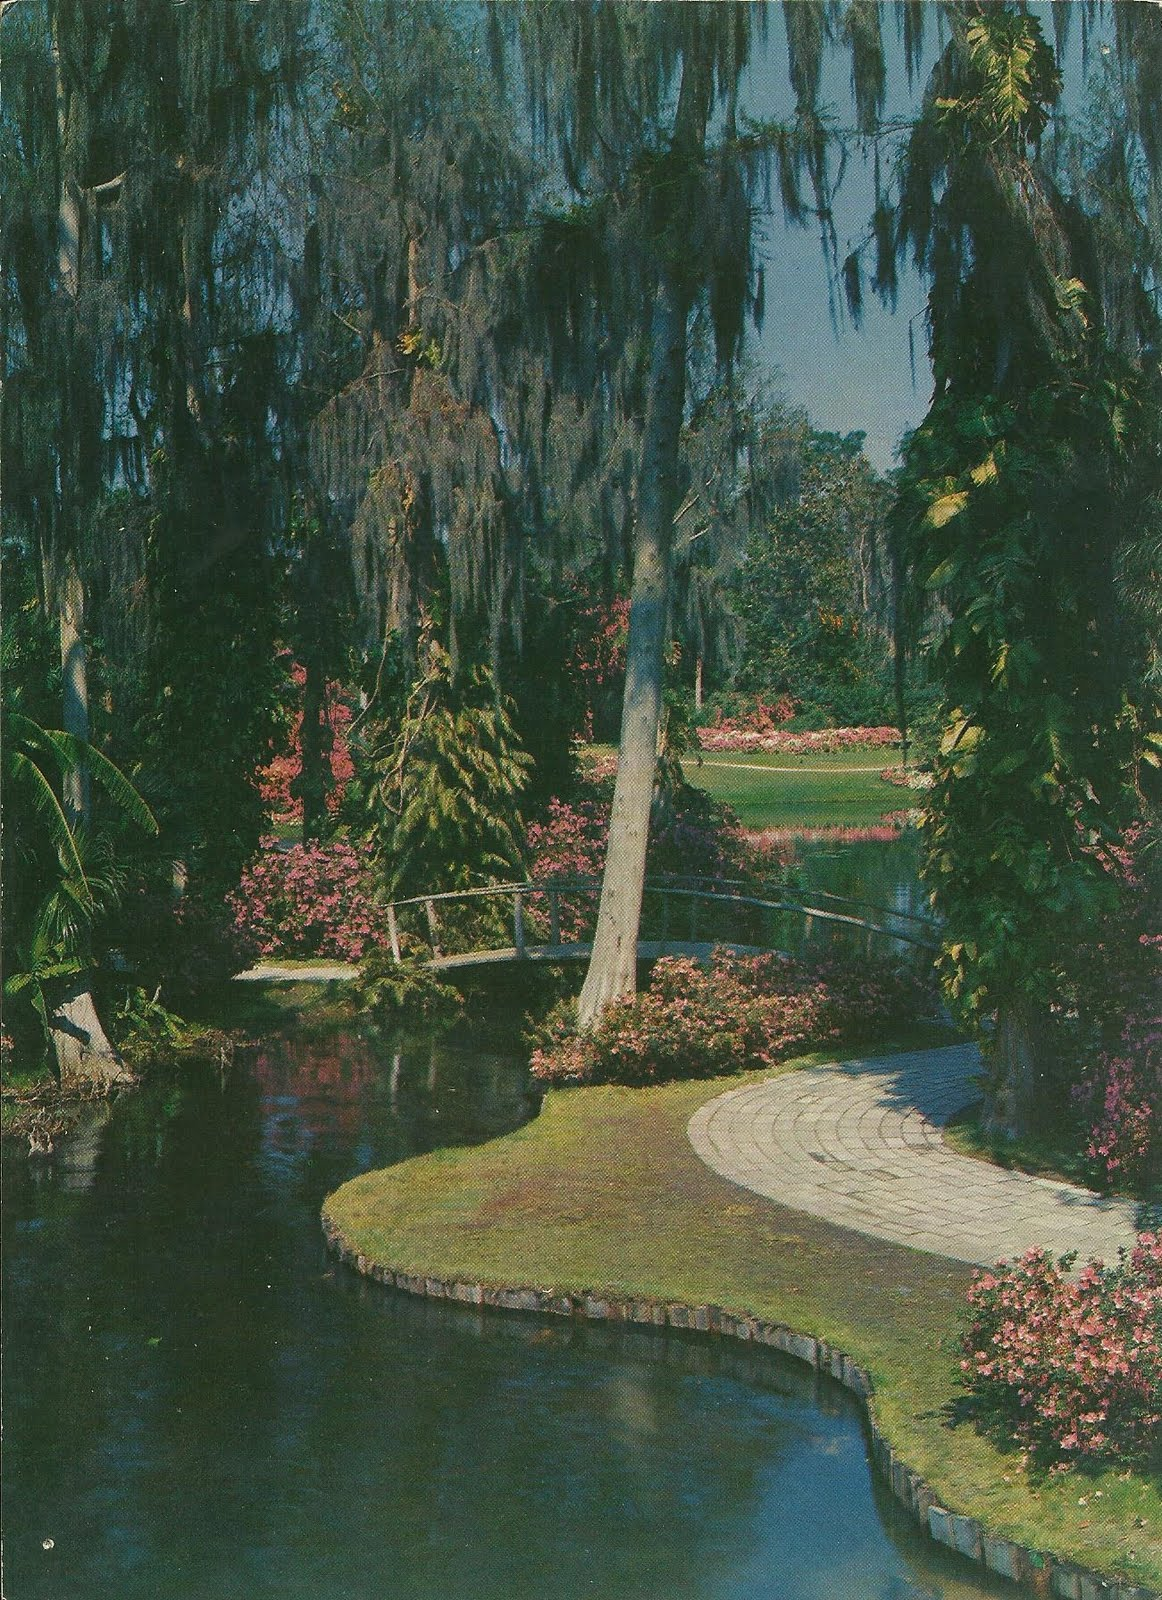 Vintage Travel Postcards: Cypress Gardens